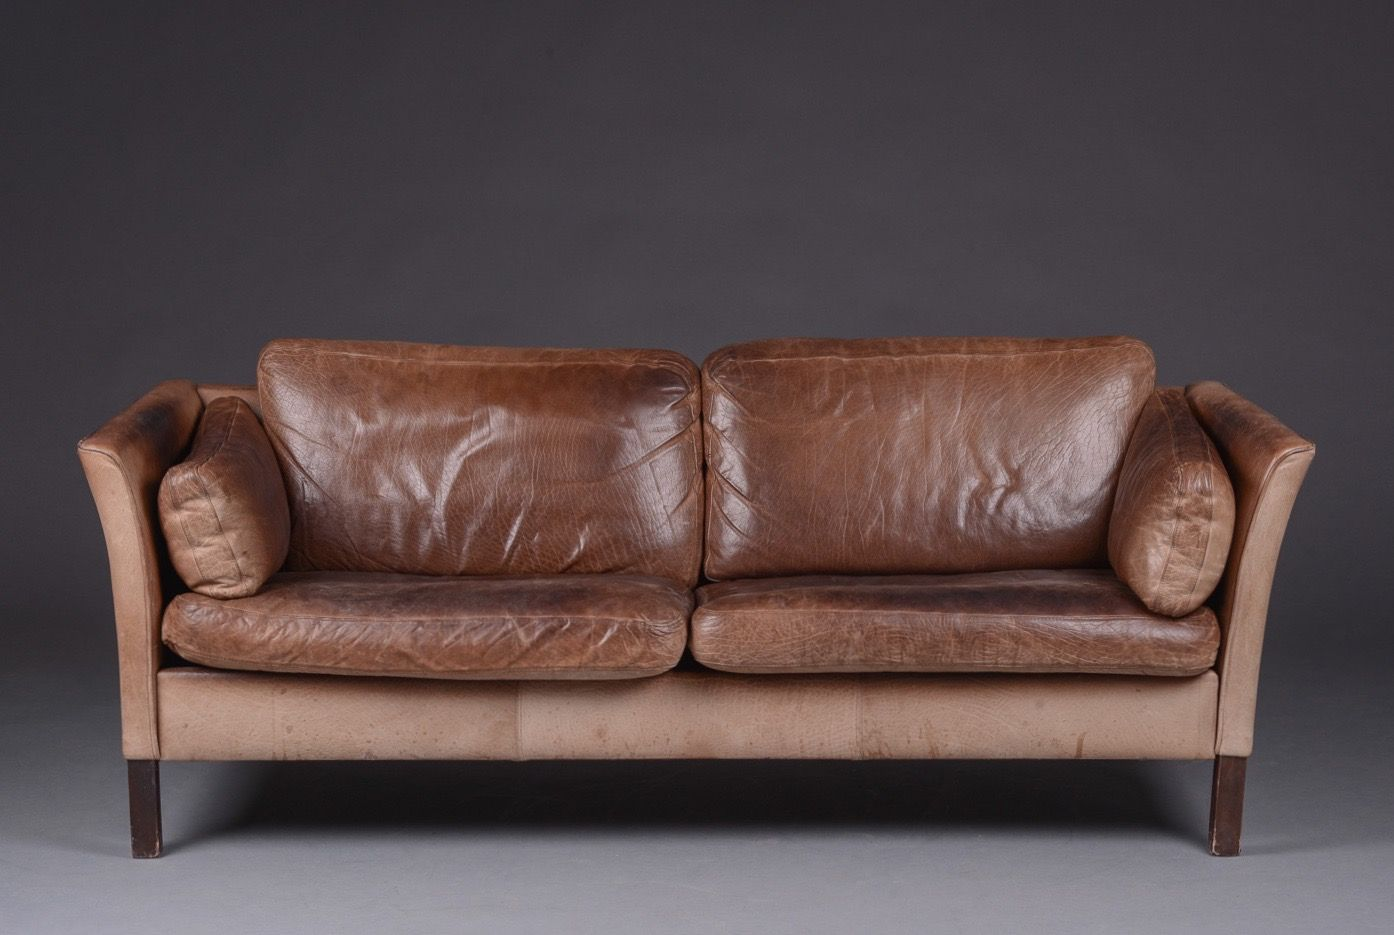 vintage danish leather sofa by mogens hansen for sale at